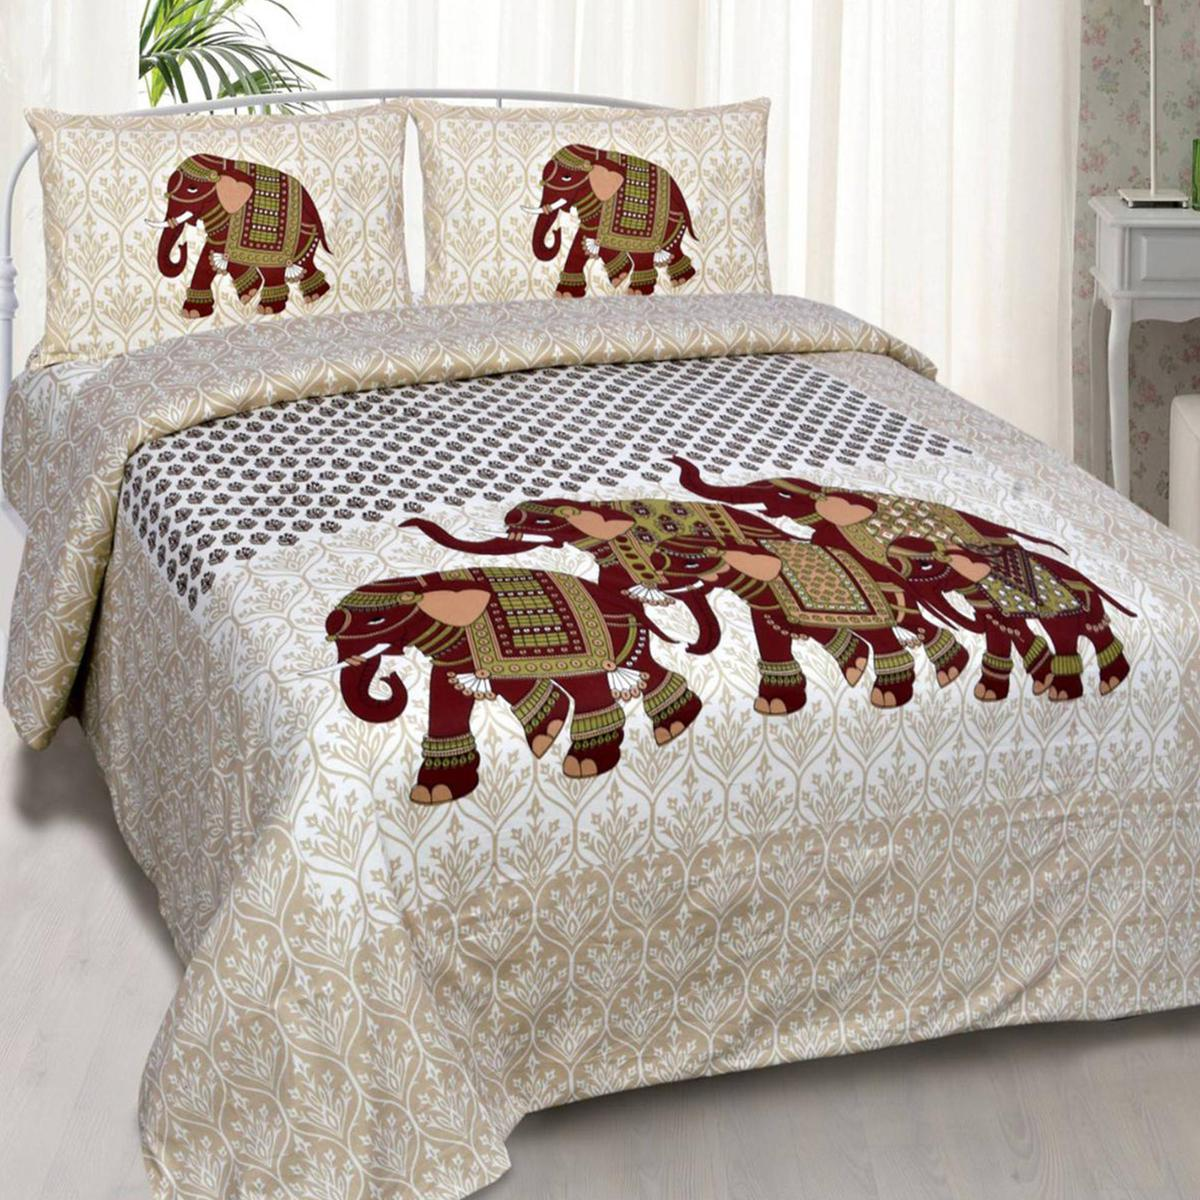 Delightful White-Brown Colored Elepant Printed Double Cotton Bedsheet With 2 Pillow Cover